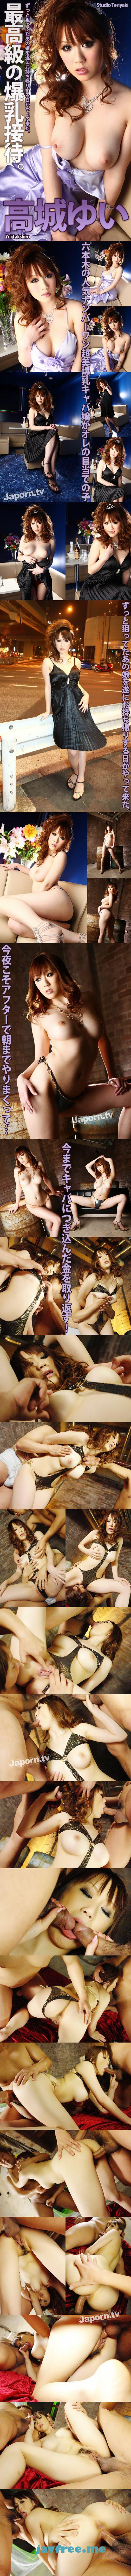 [DVD][PT 96] Club One : Yui Takashiro 高城ゆい Yui Takashiro PT